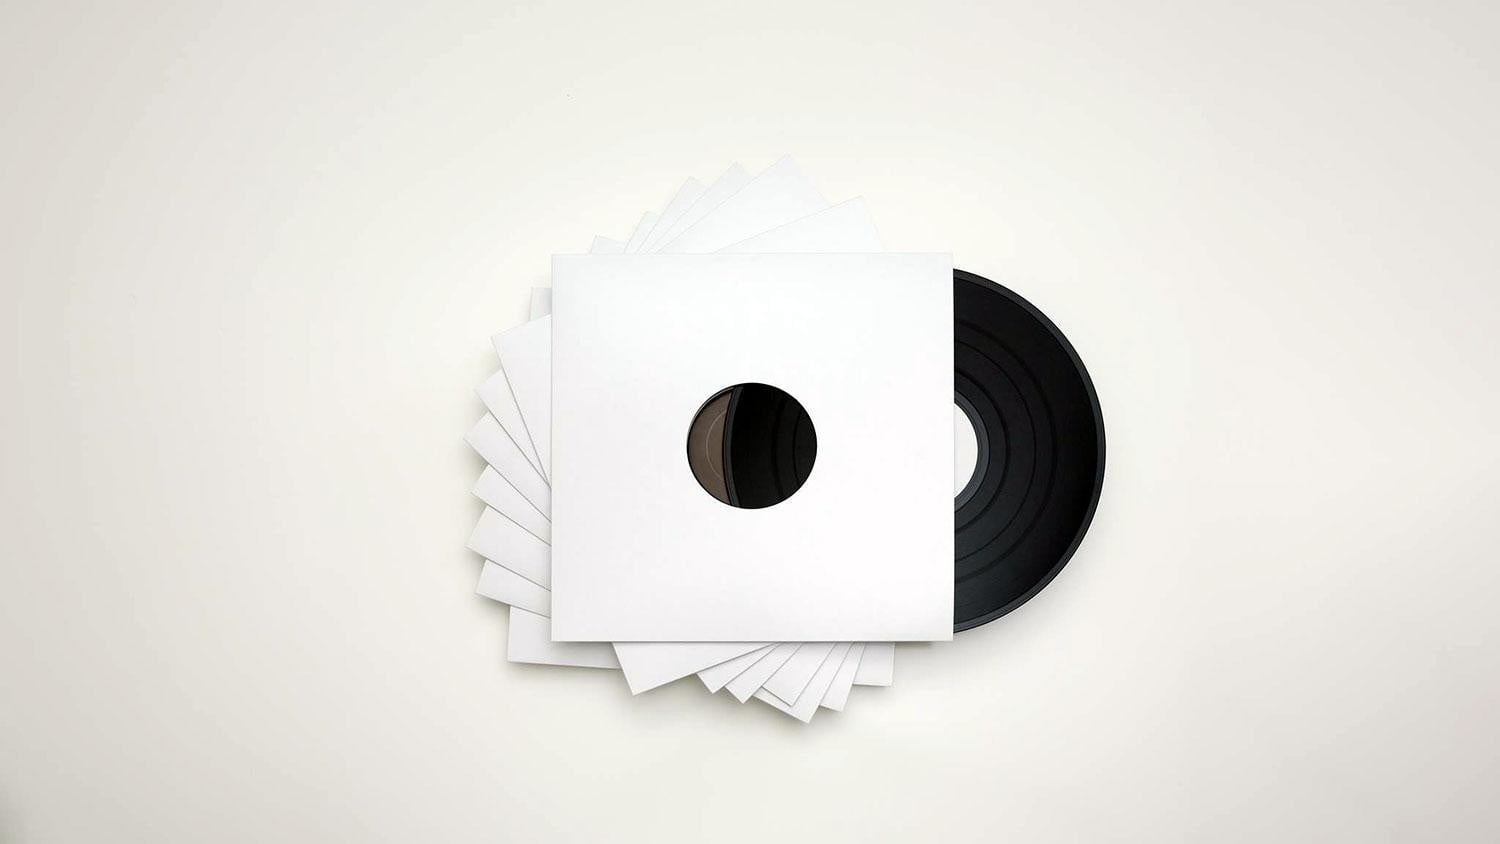 qrates crowdfunding and pressing assistance for vinyl records